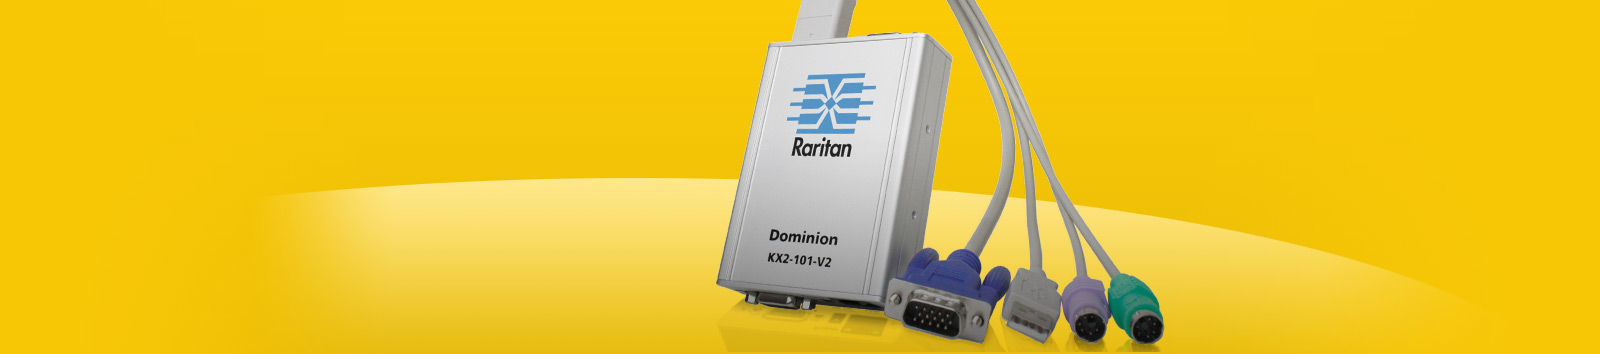 Raritan Dominion DKX2-101-V2 KVM Over IP KVM Gateway